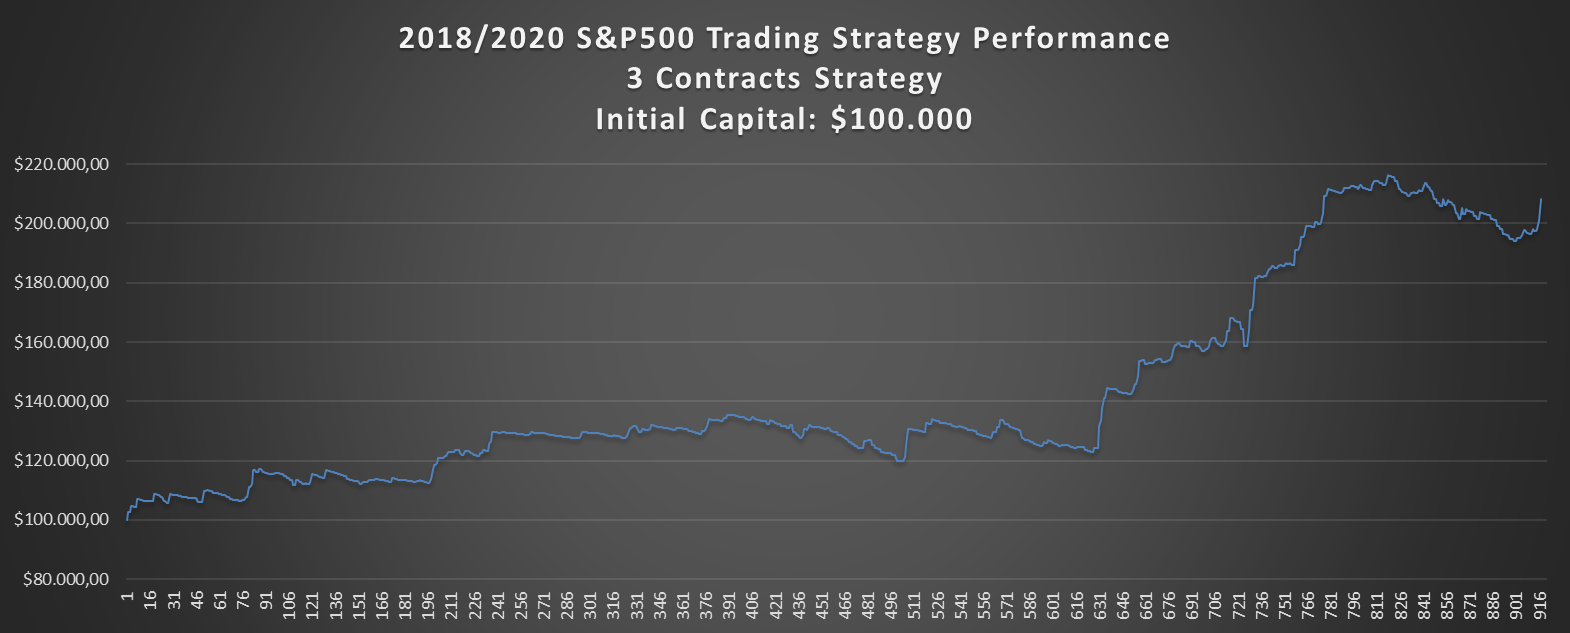 2018-2020-S&P500-Trading-Strategy-Performance